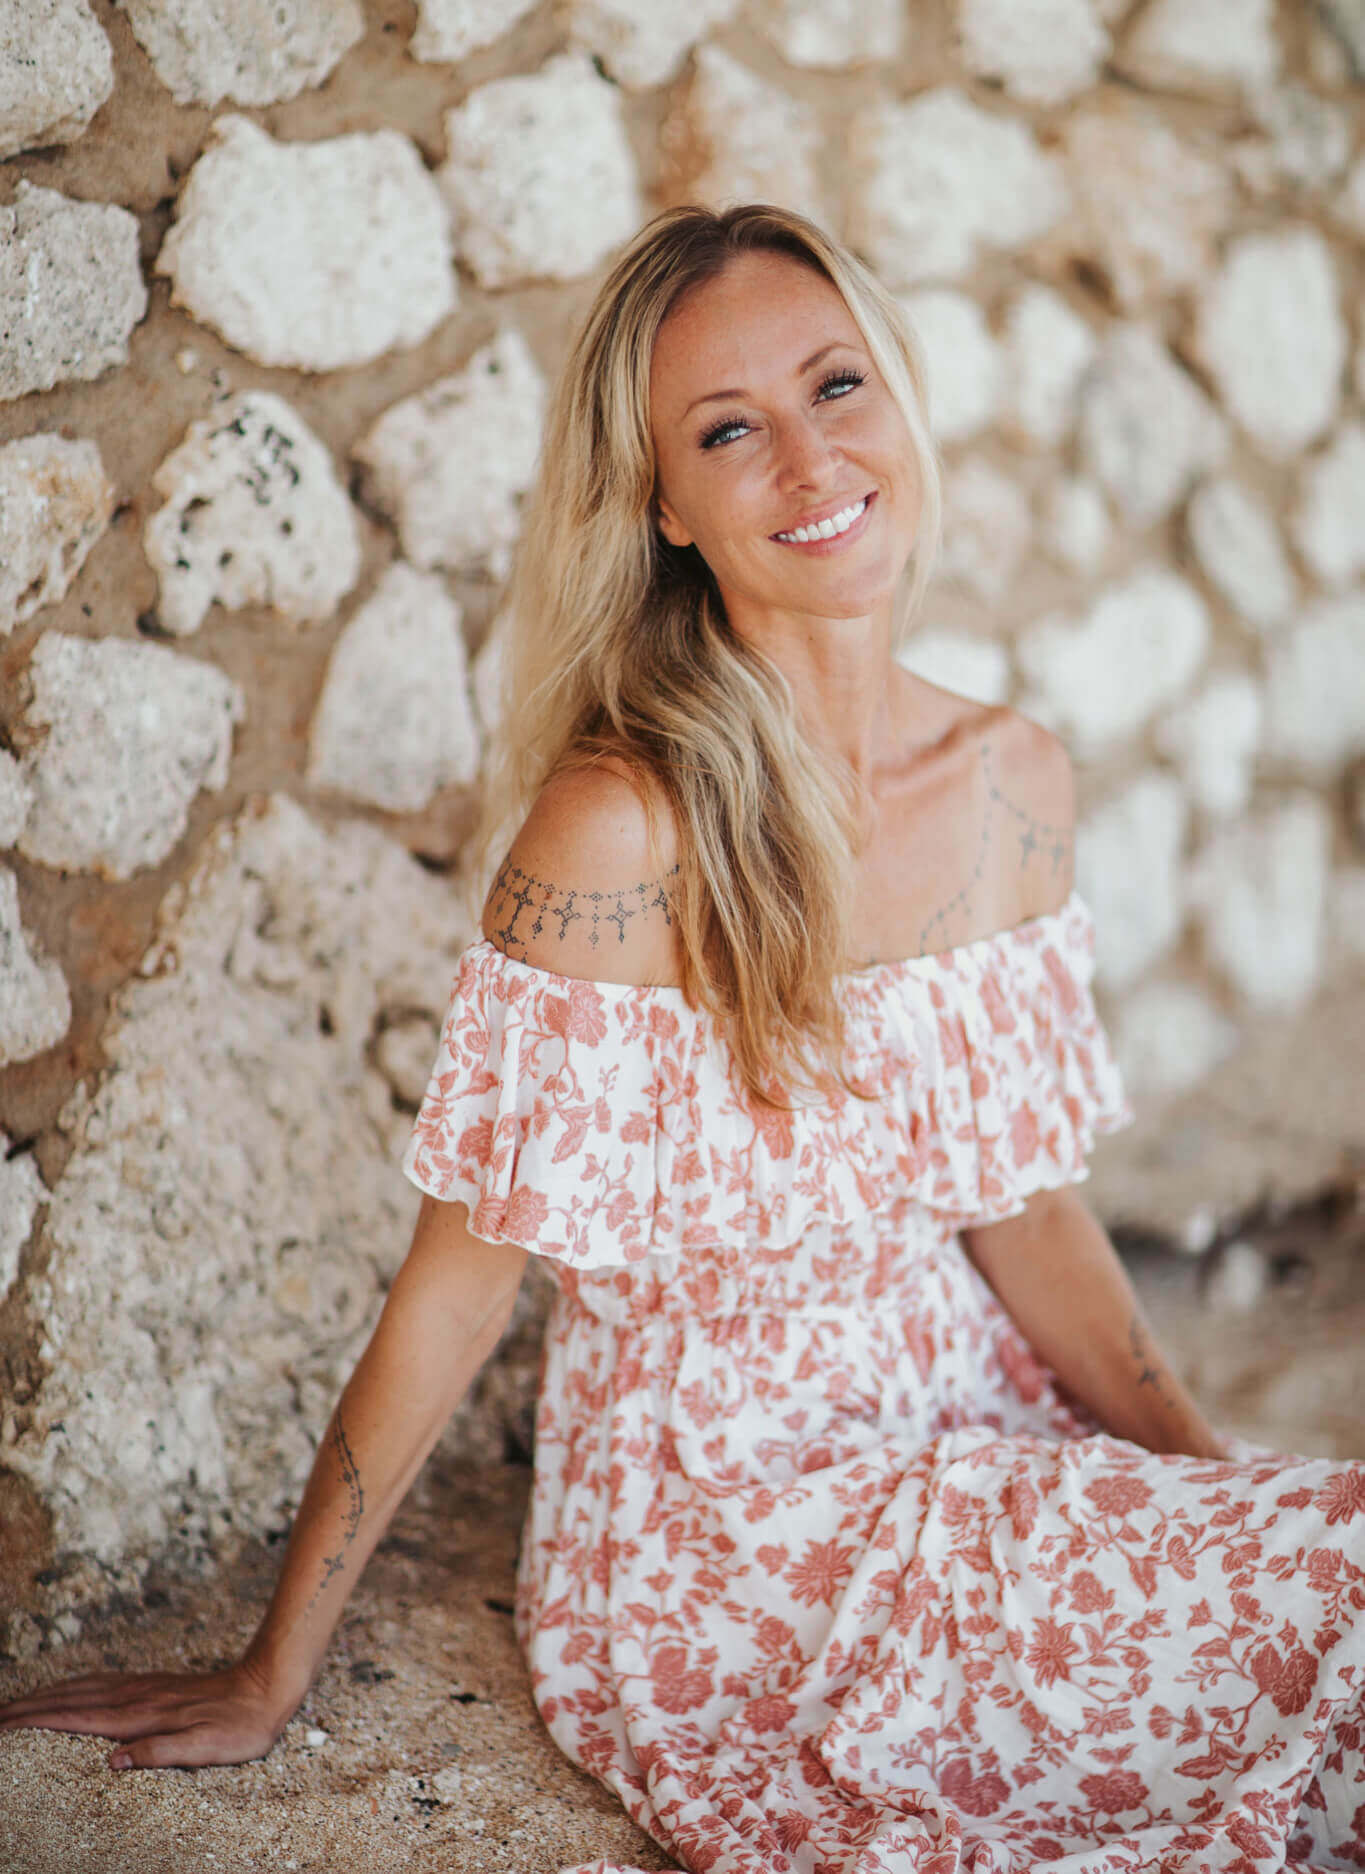 Karina smiling in floral dress sitting in front of stone wall